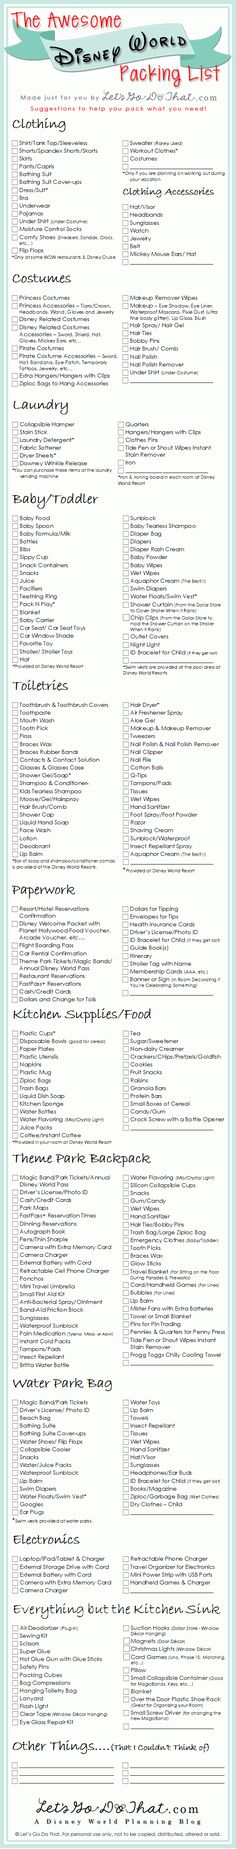 Step 8 Make Your Packing List Plan what you and your family will wear each day and for little kids. Bring an extra set of clothing. You will need to need to pack all your toiletries, comfy shoes, clothes and don't forget your child's princess costume! This packing list is just a list of suggestions. …